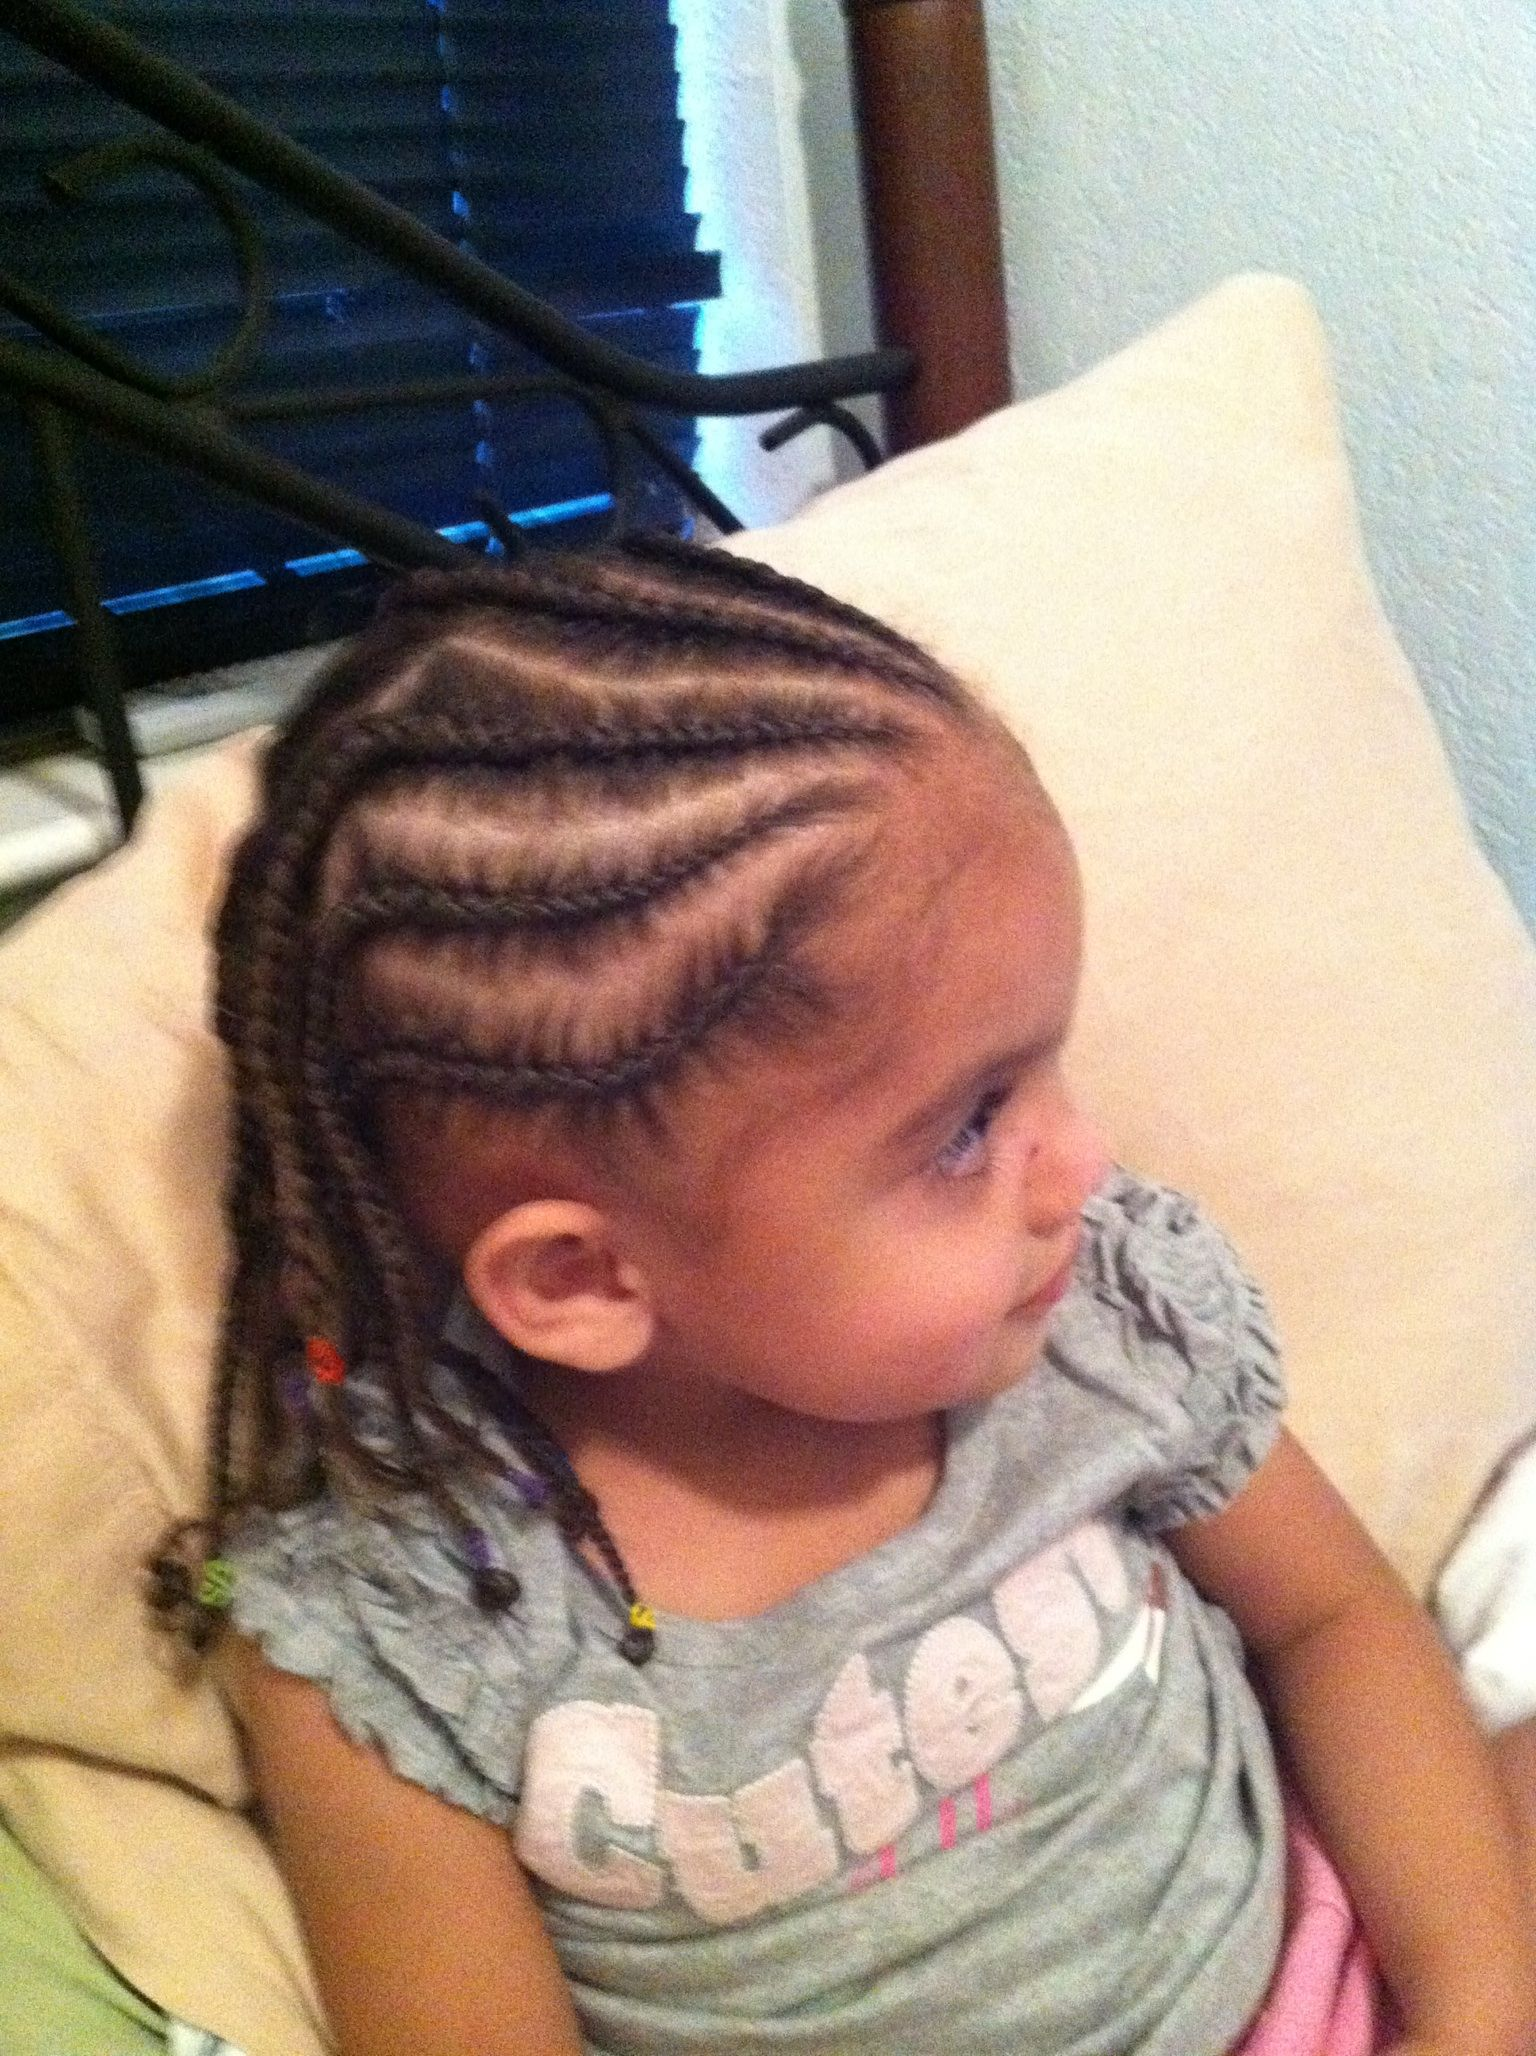 Braids Kids Hairstyles Mixed Girl Hair Hair Styles Mixed Girl Hairstyles Girl Hairstyles